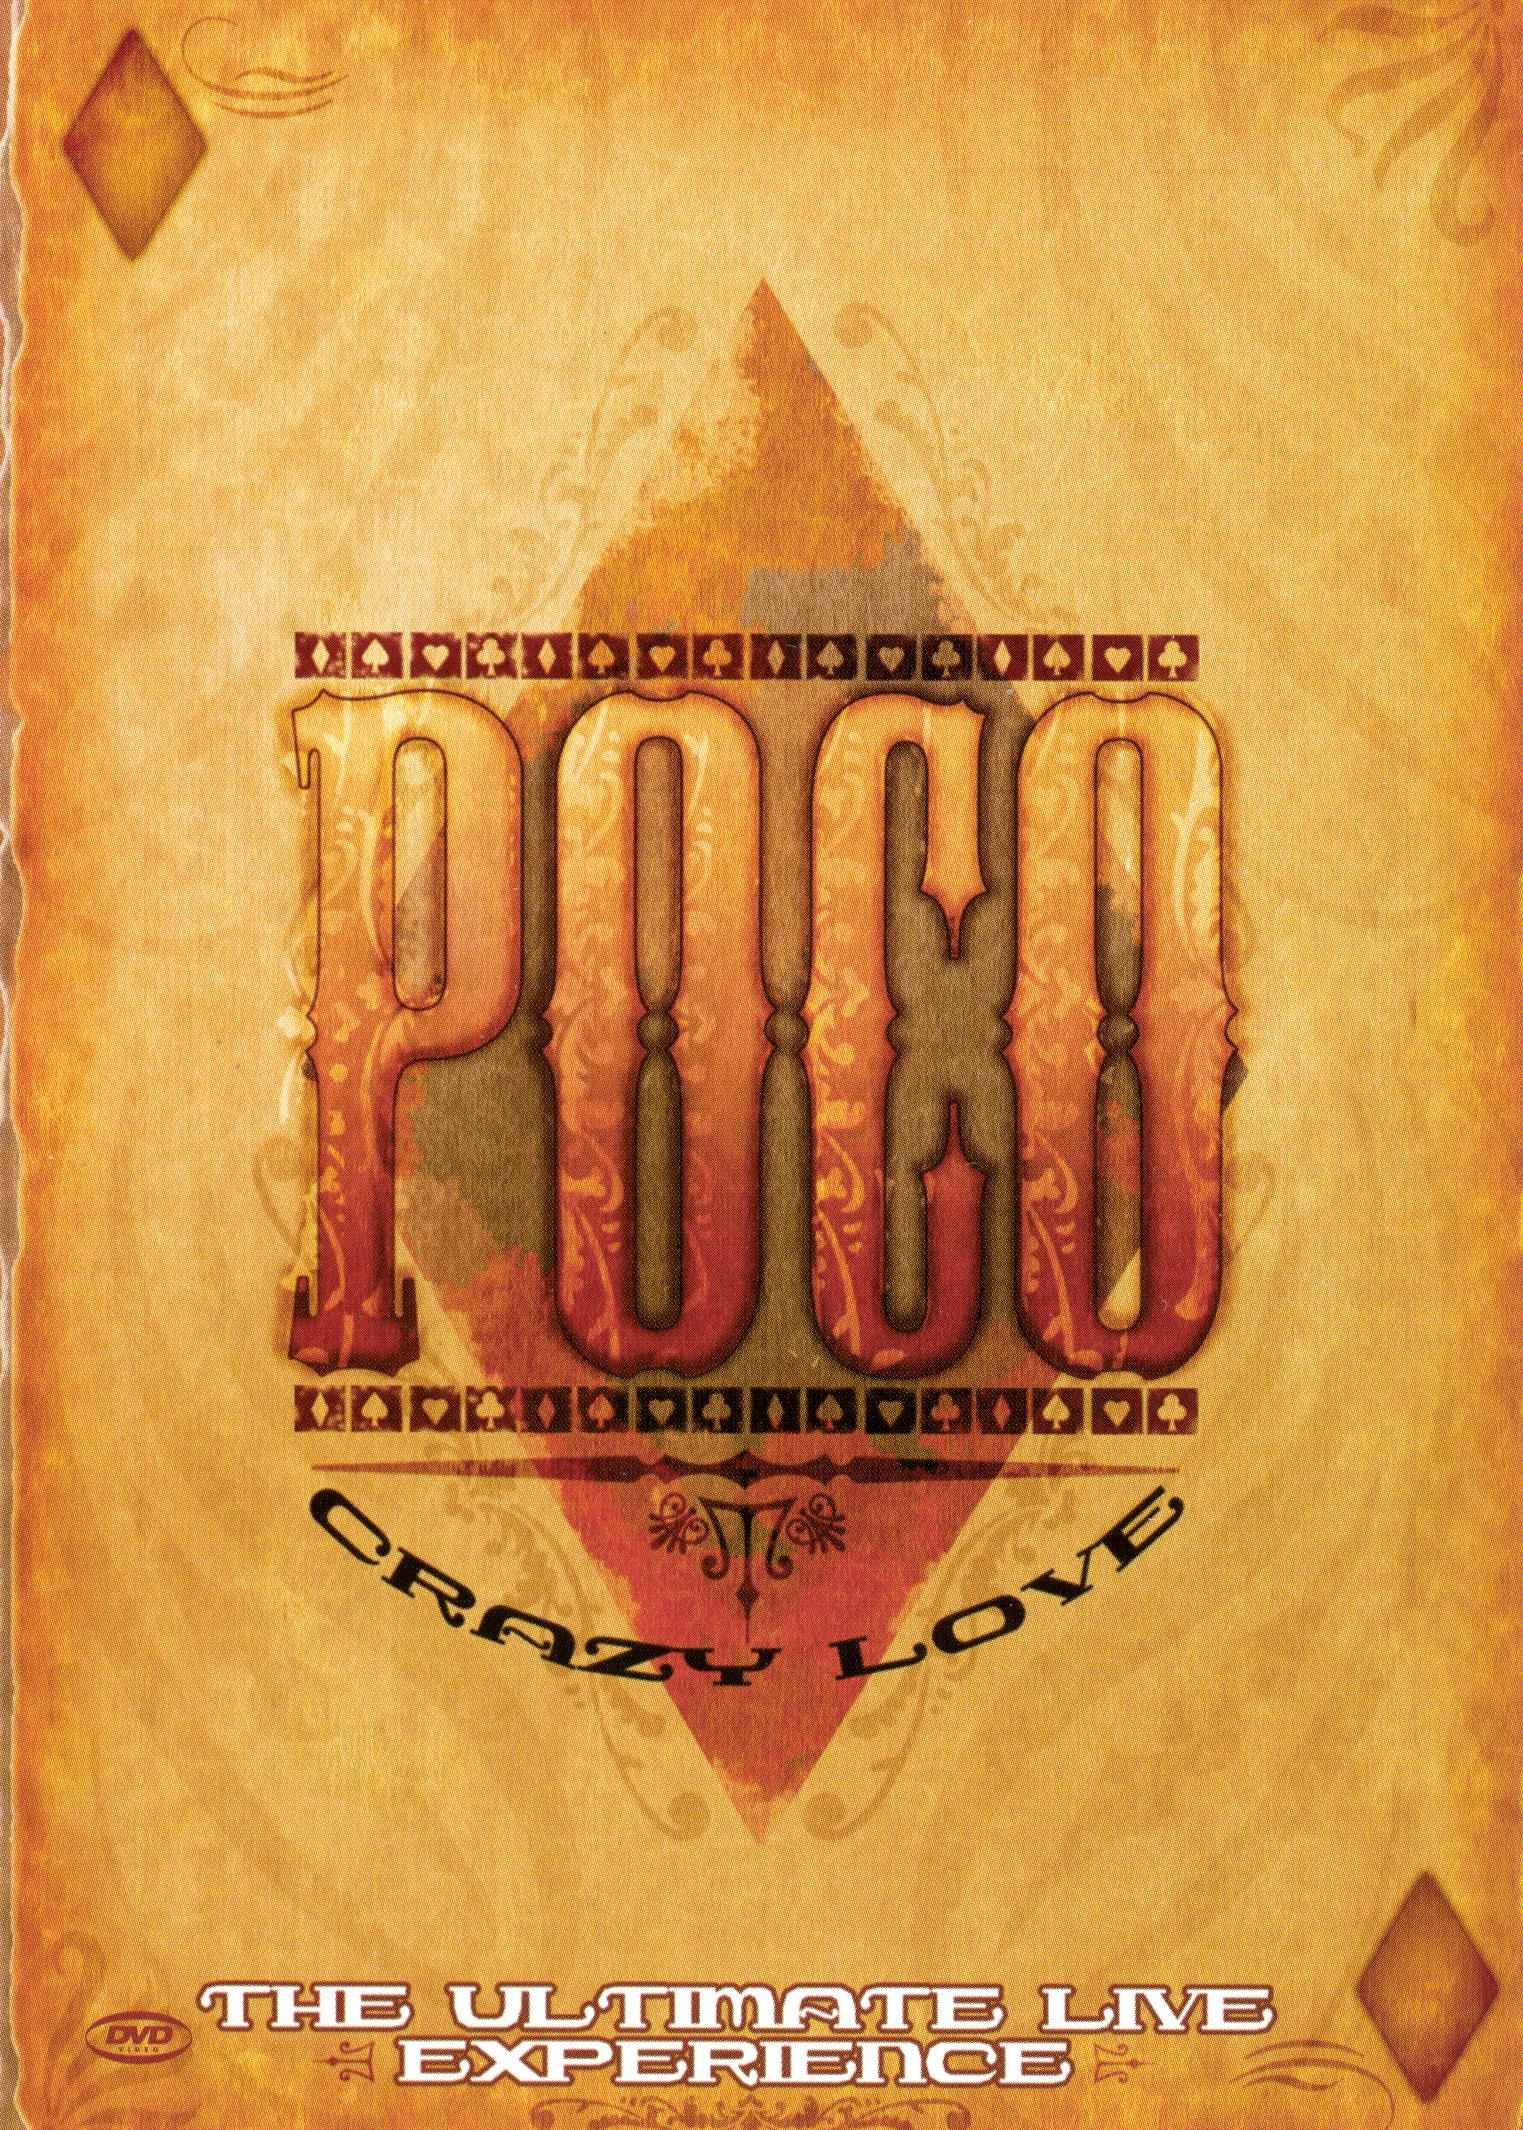 Poco: Crazy Love - The Ultimate Live Experience